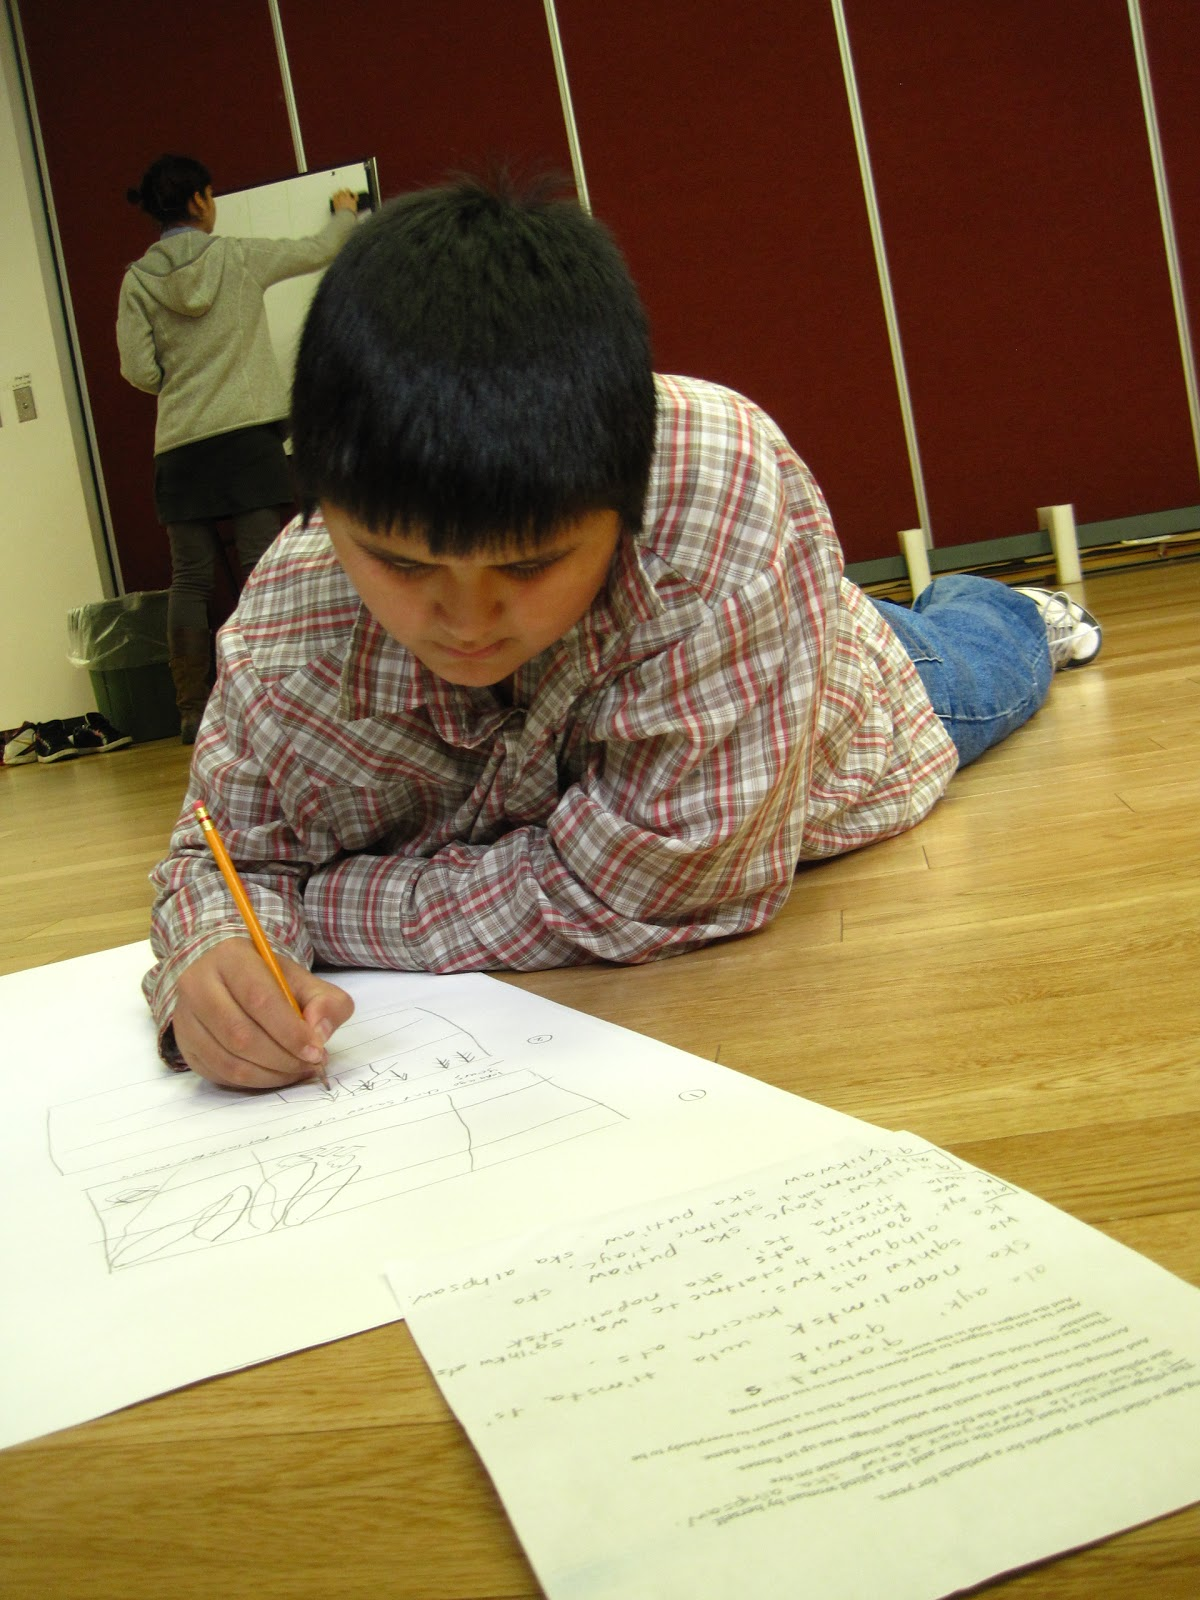 Here is Jerrel working on his storyboard